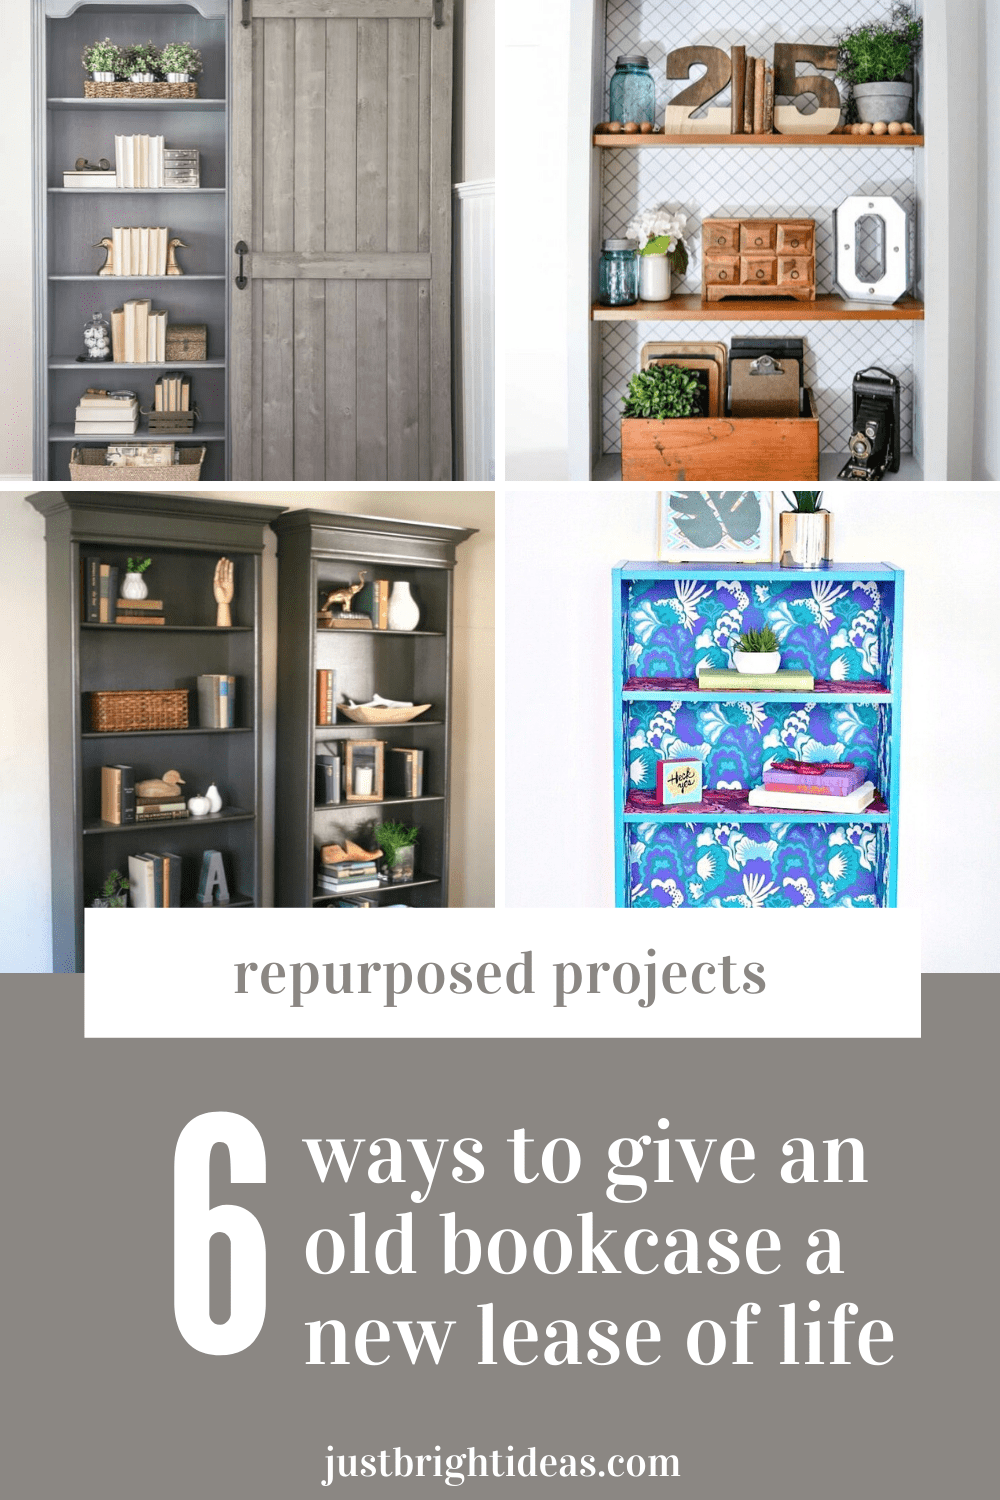 Check out these clever ways to transform an old bookcase into something stylish